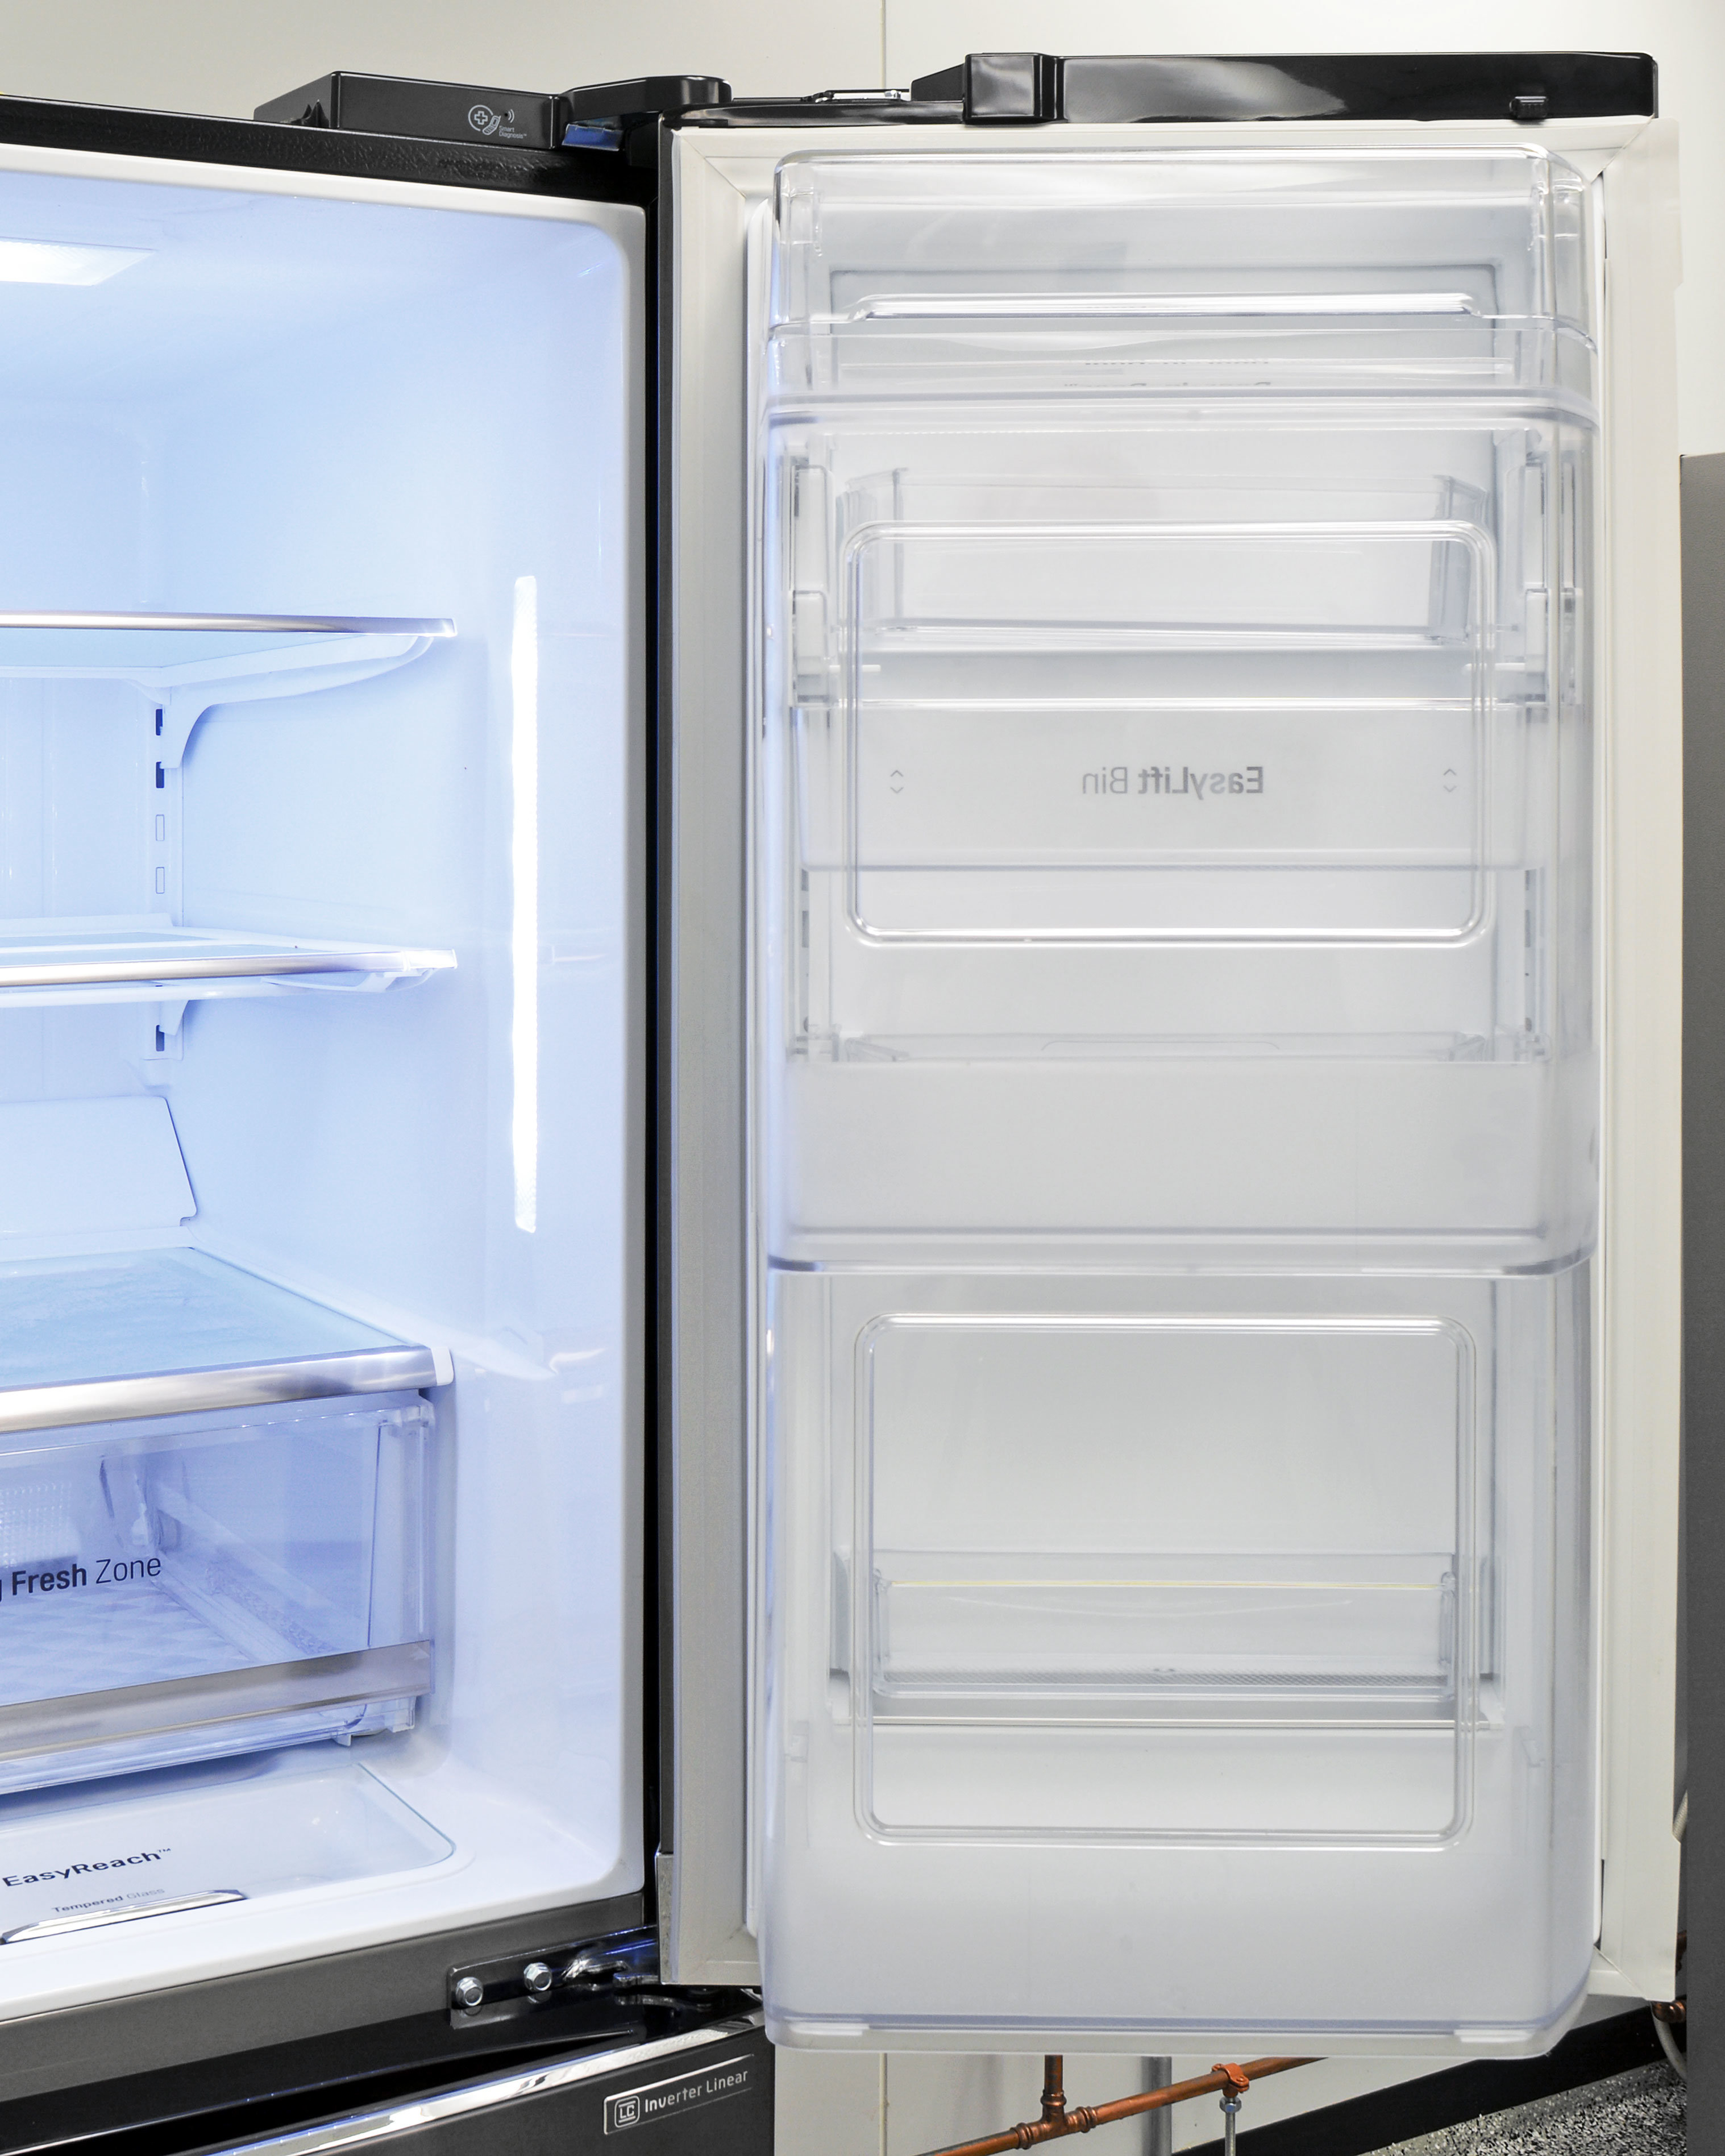 Many of the LG LPXS30866D's largest door shelves aren't easily accessible when the full door is open due to the fixed plastic barrier.